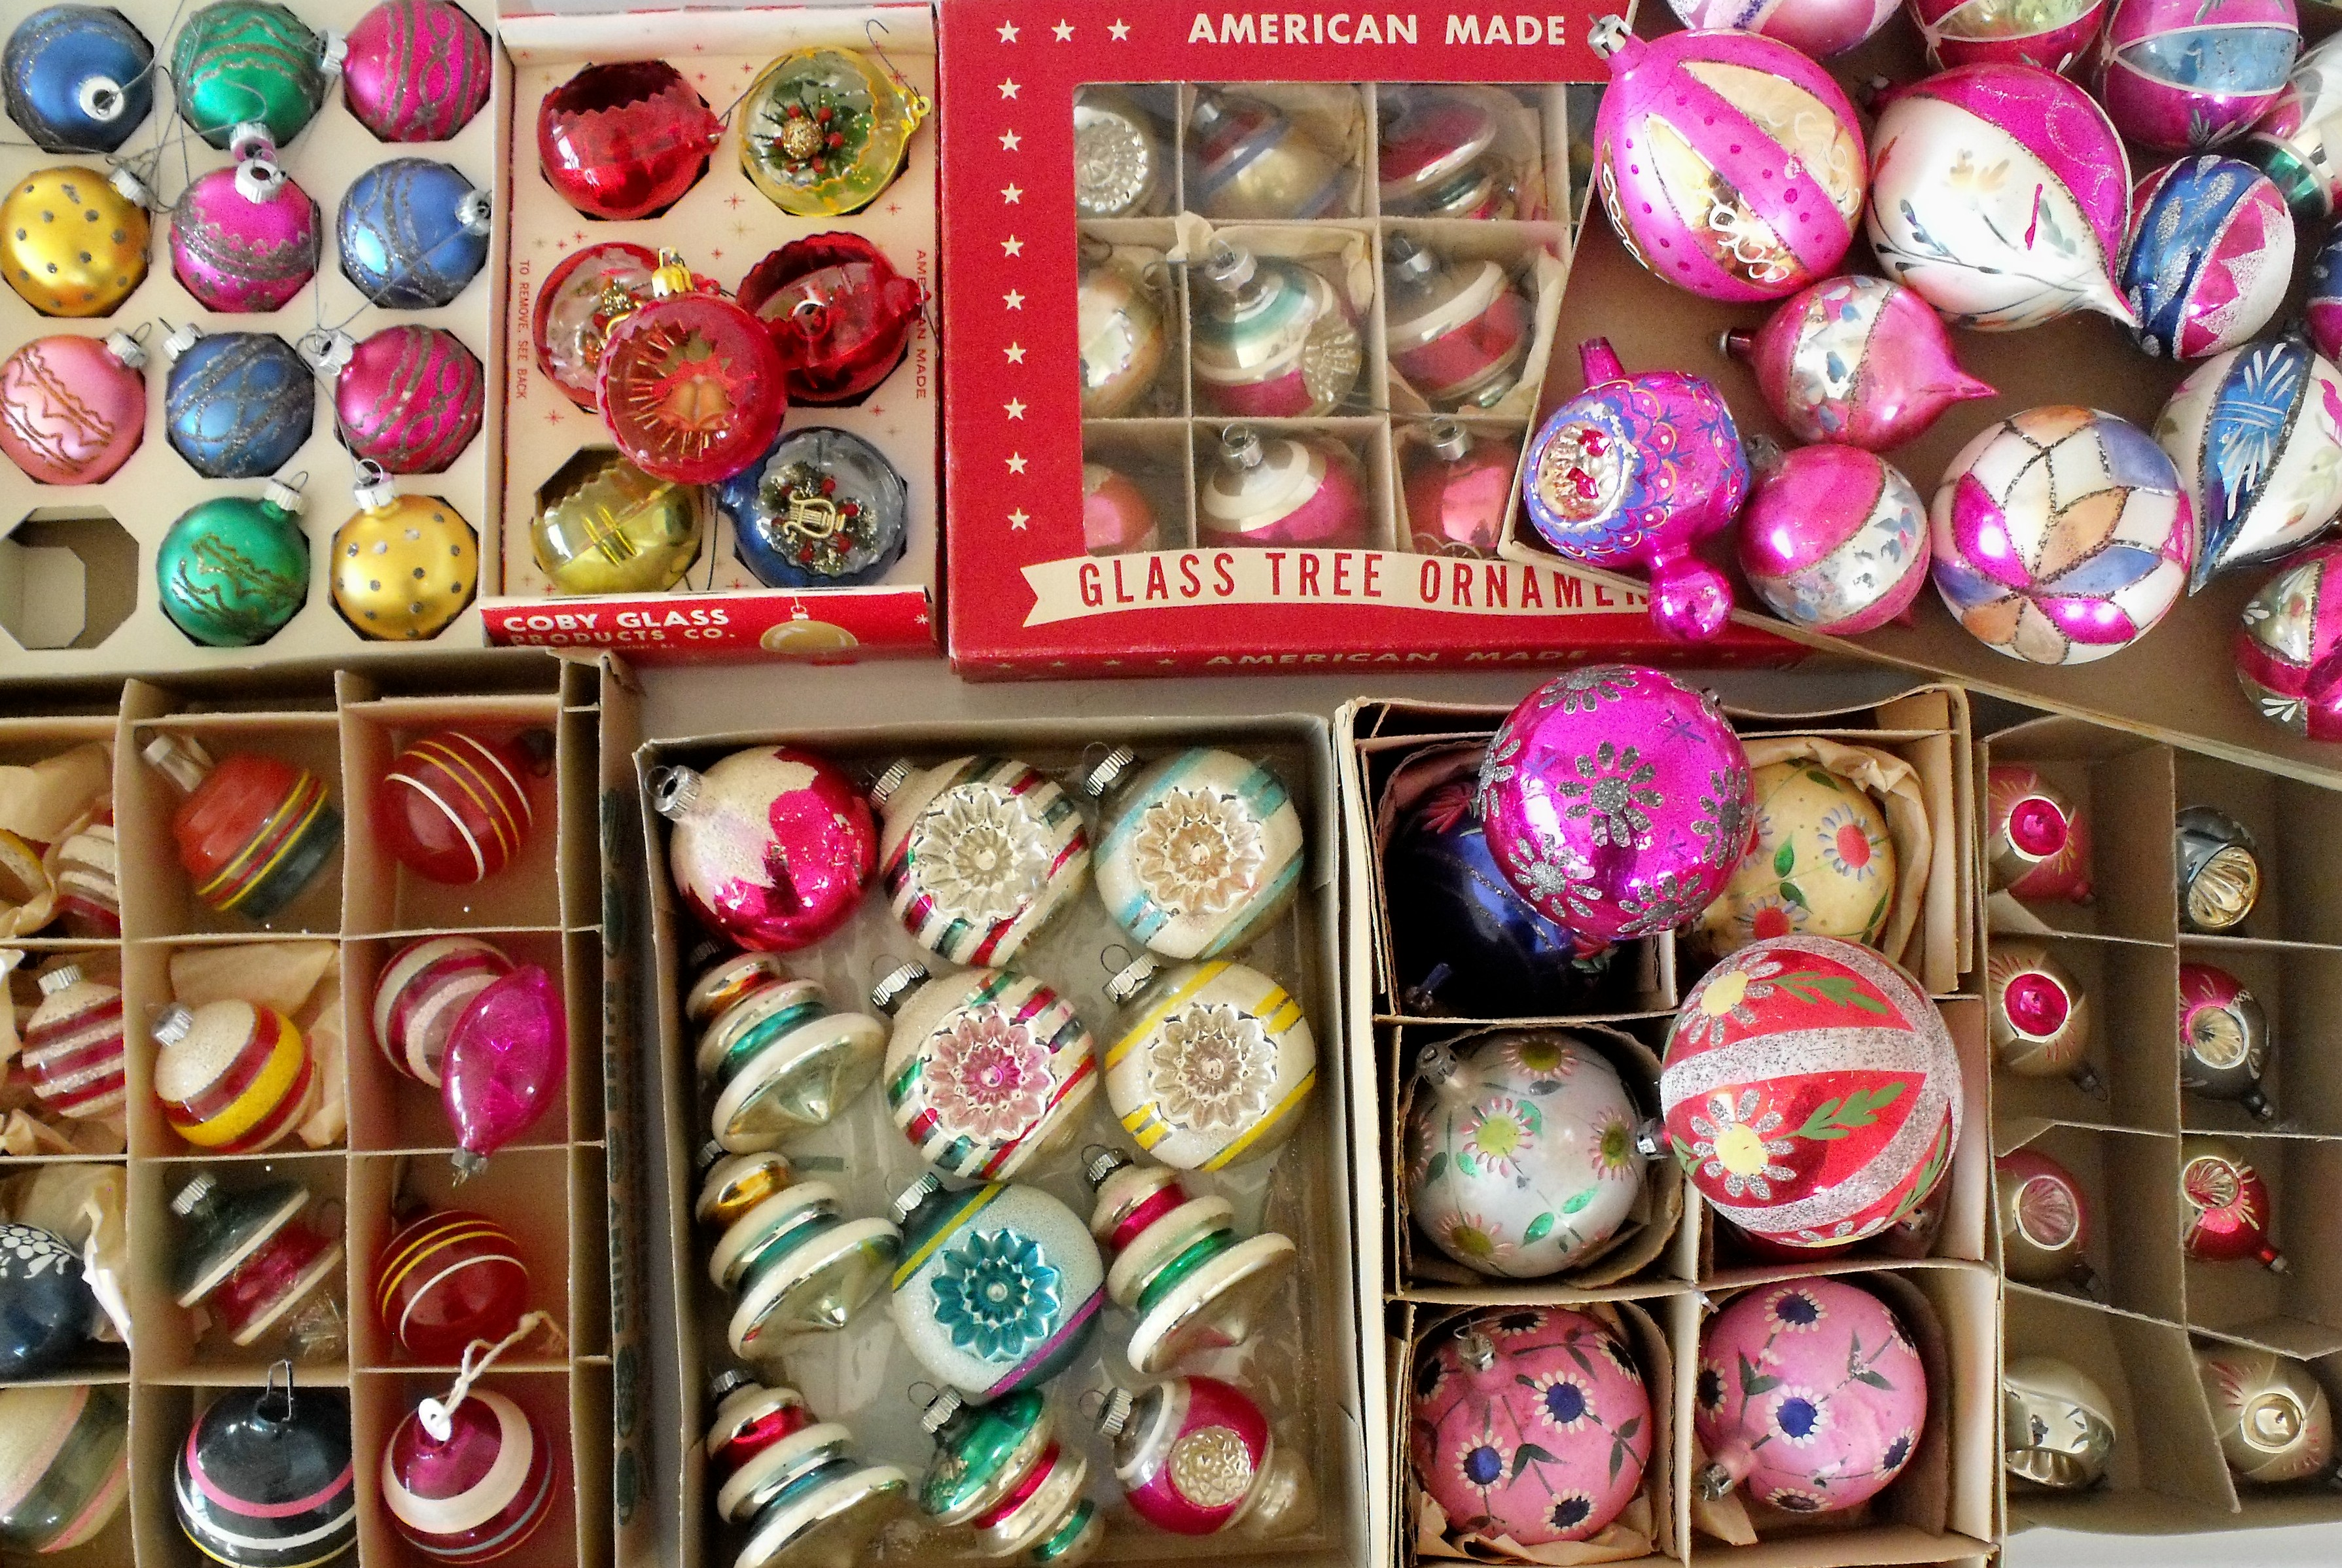 Vintage looking christmas ornaments - Like Buttons Ornaments Always Look So Much Better When They Re All Organized And Grouped Together